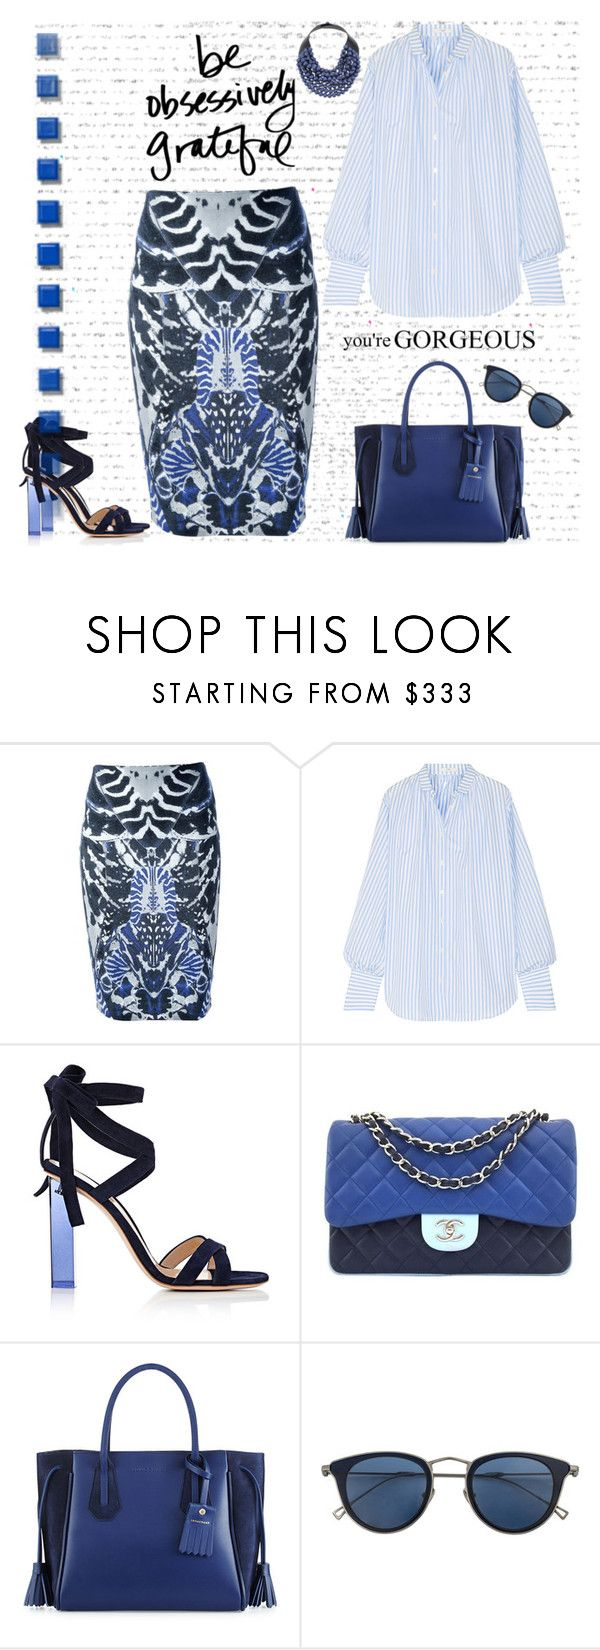 """""""Untitled #1551"""" by jothomas ❤ liked on Polyvore featuring McQ by Alexander McQueen, Tome, Gianvito Rossi, Chanel, Longchamp, Issey Miyake and Rossana Fani"""